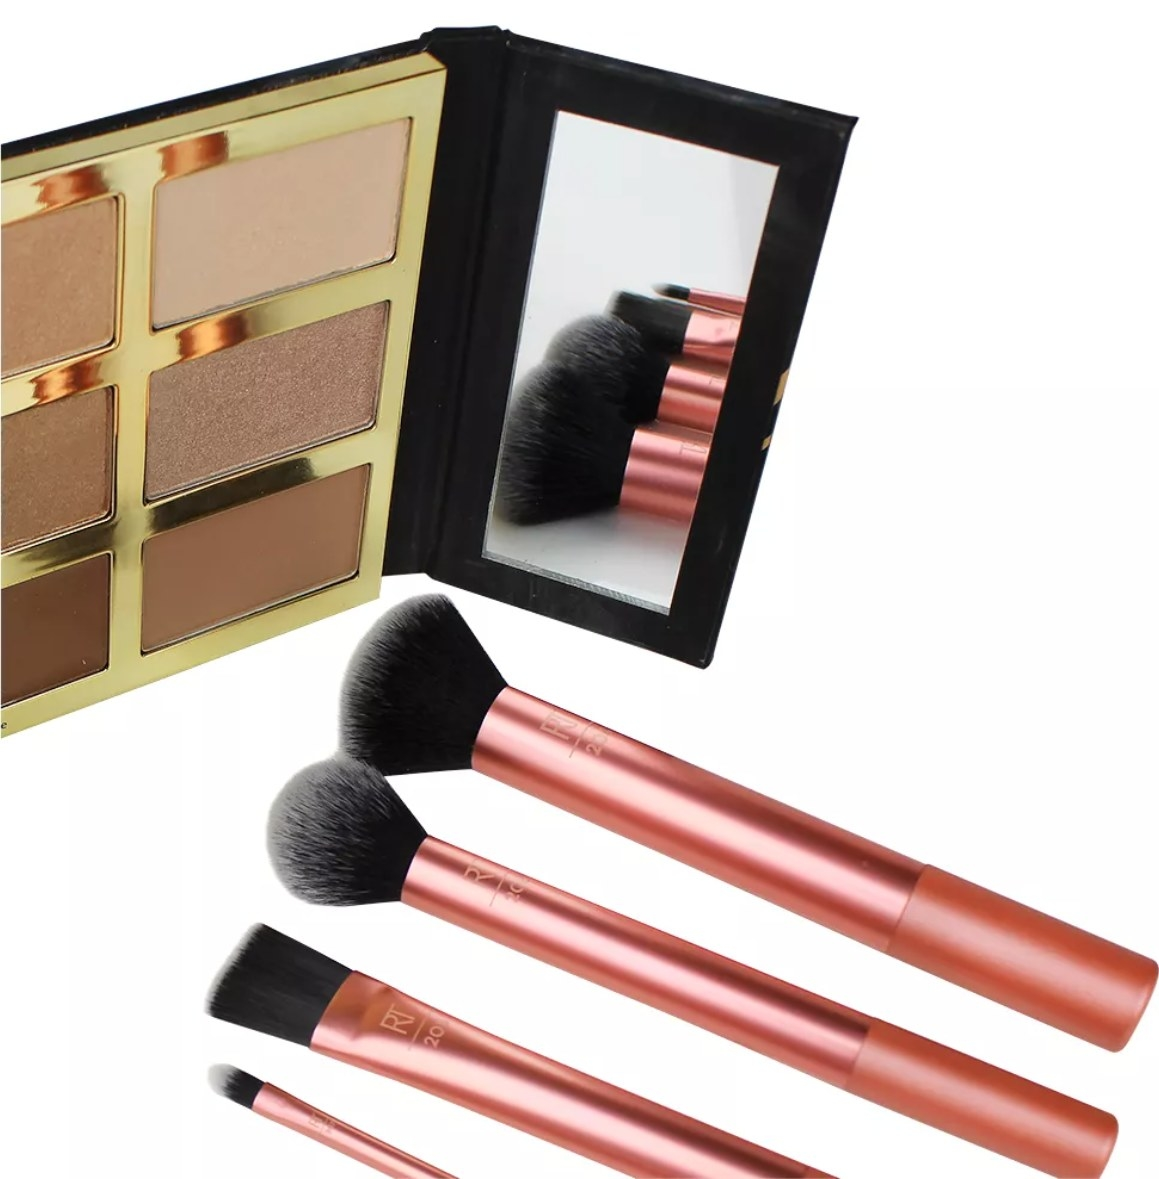 The brushes for contouring, powder, and eyeshadow